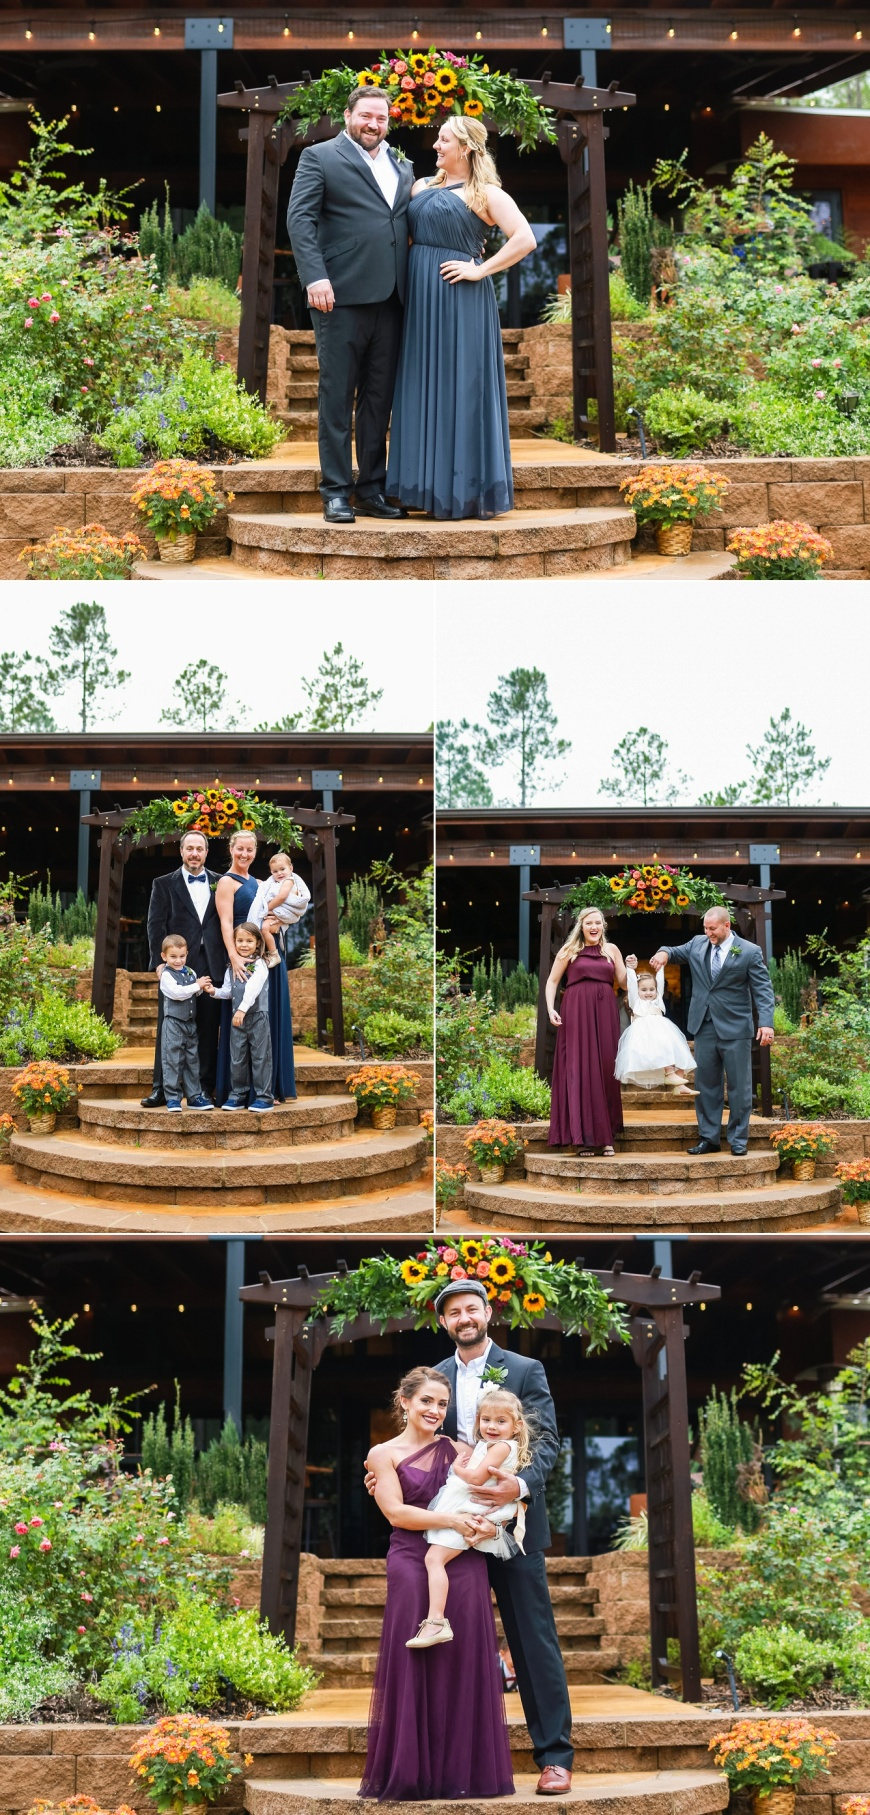 Coldwater-Gardens-Wedding-Photographer_1022.jpg